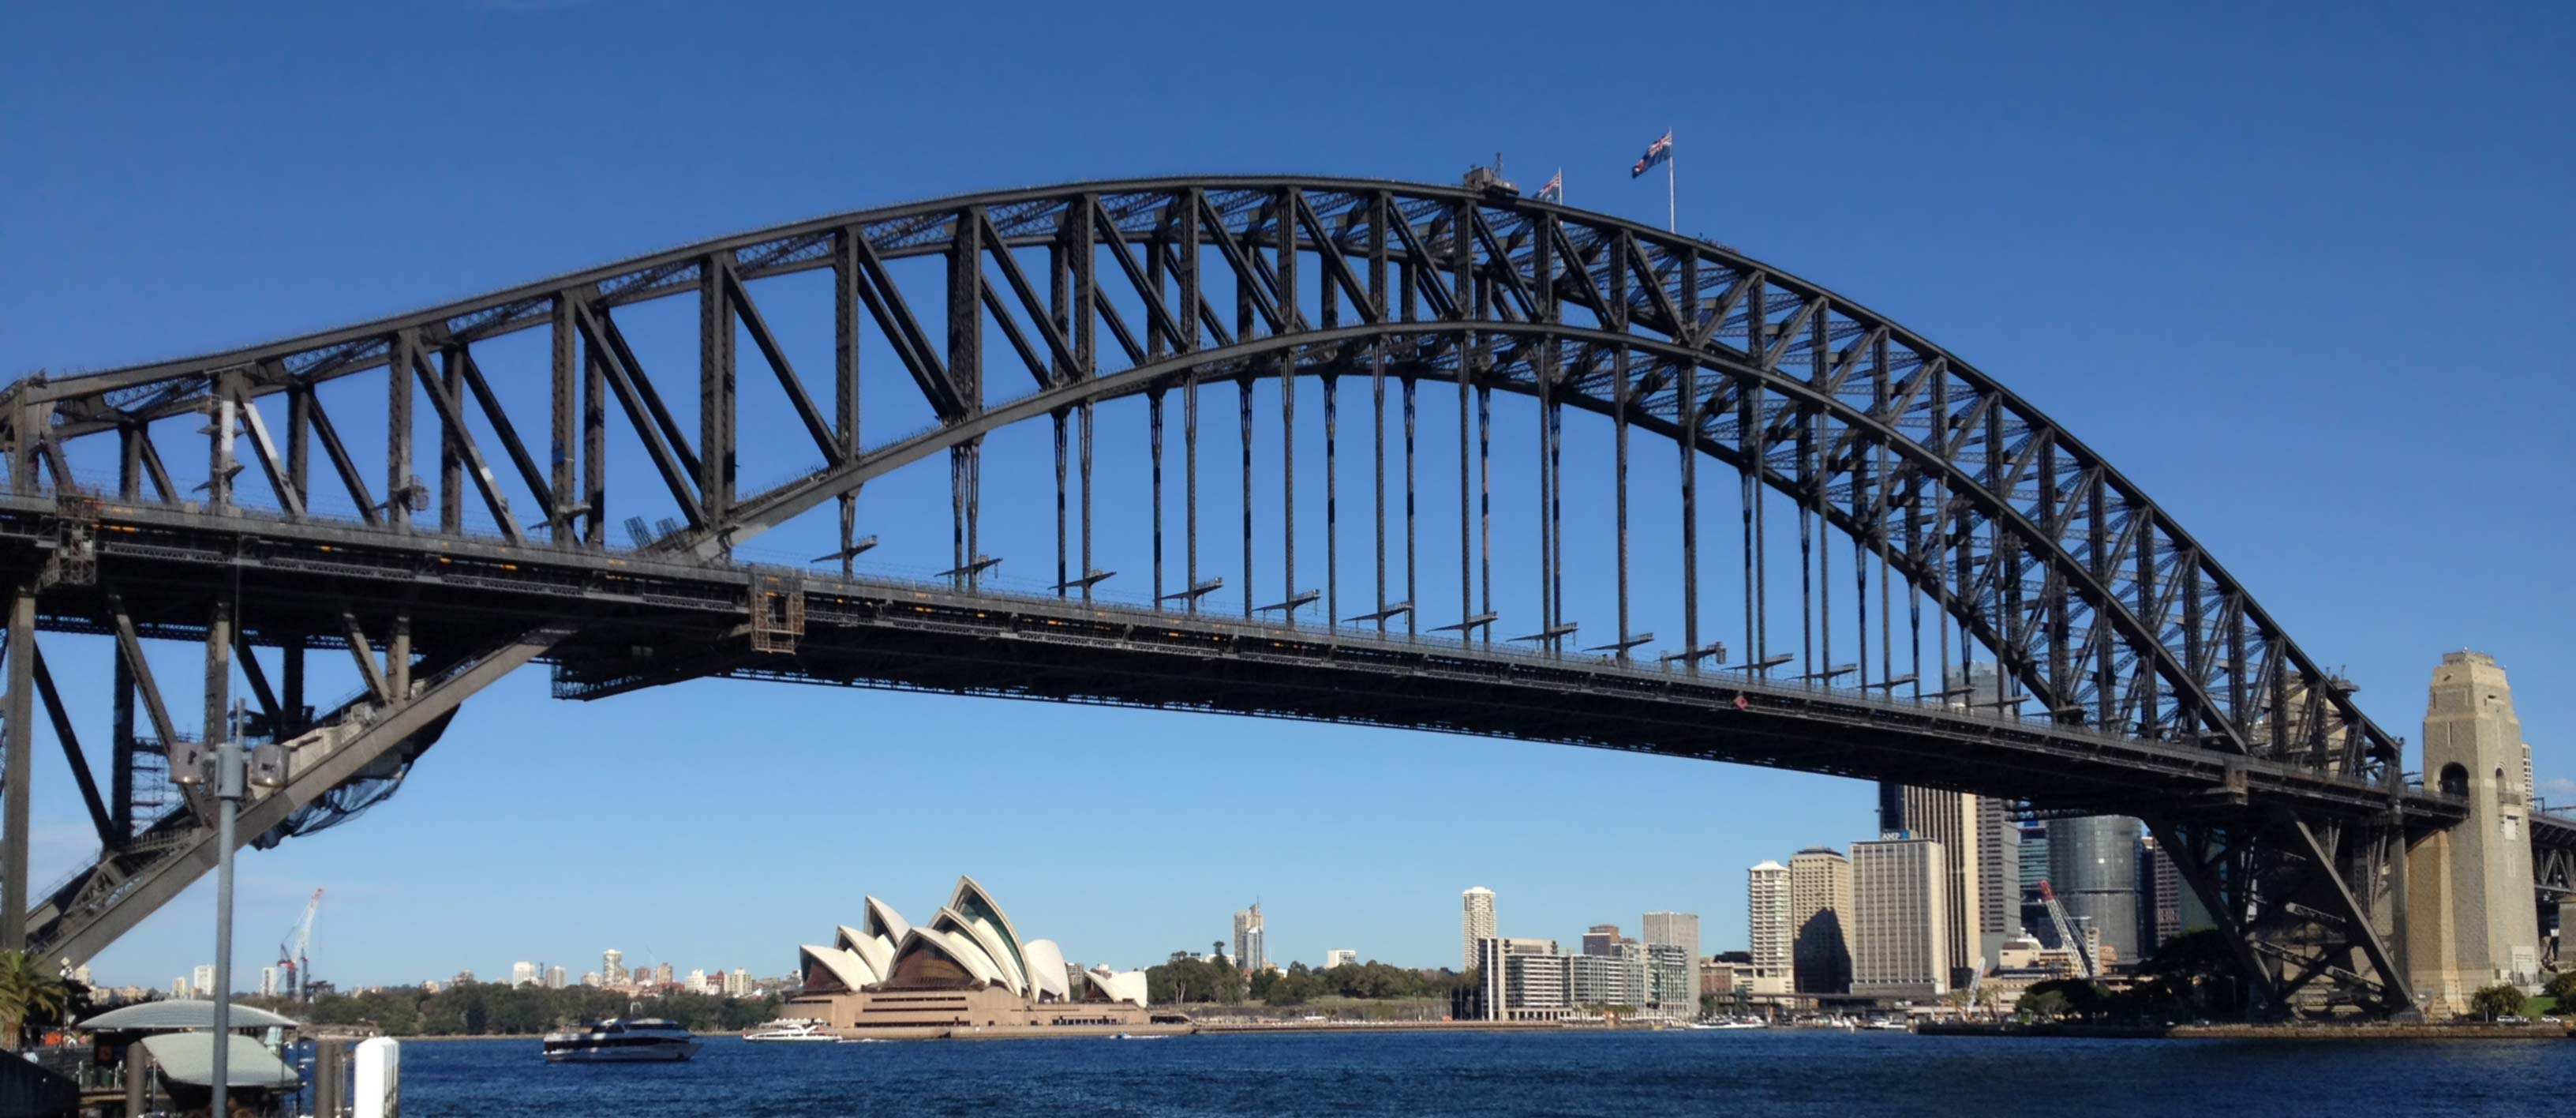 Sydney Harbour Bridge with the Opera House behind on our Sydney private tours